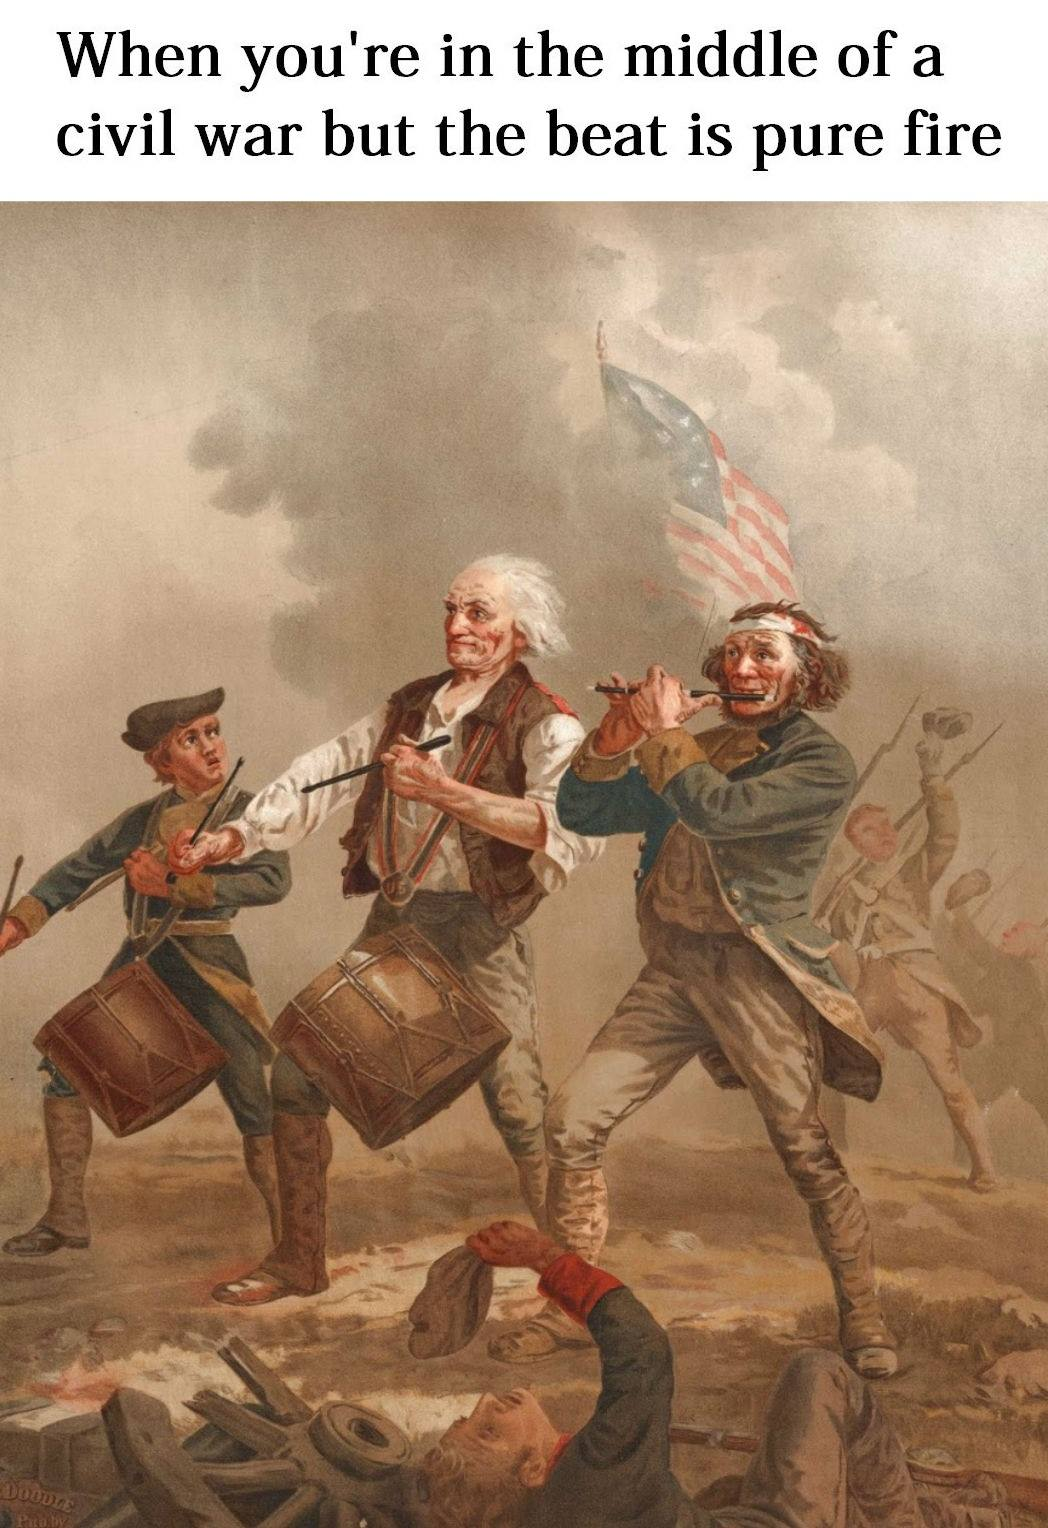 when you're in the middle of a civil war but the beat is pure fire, art history meme